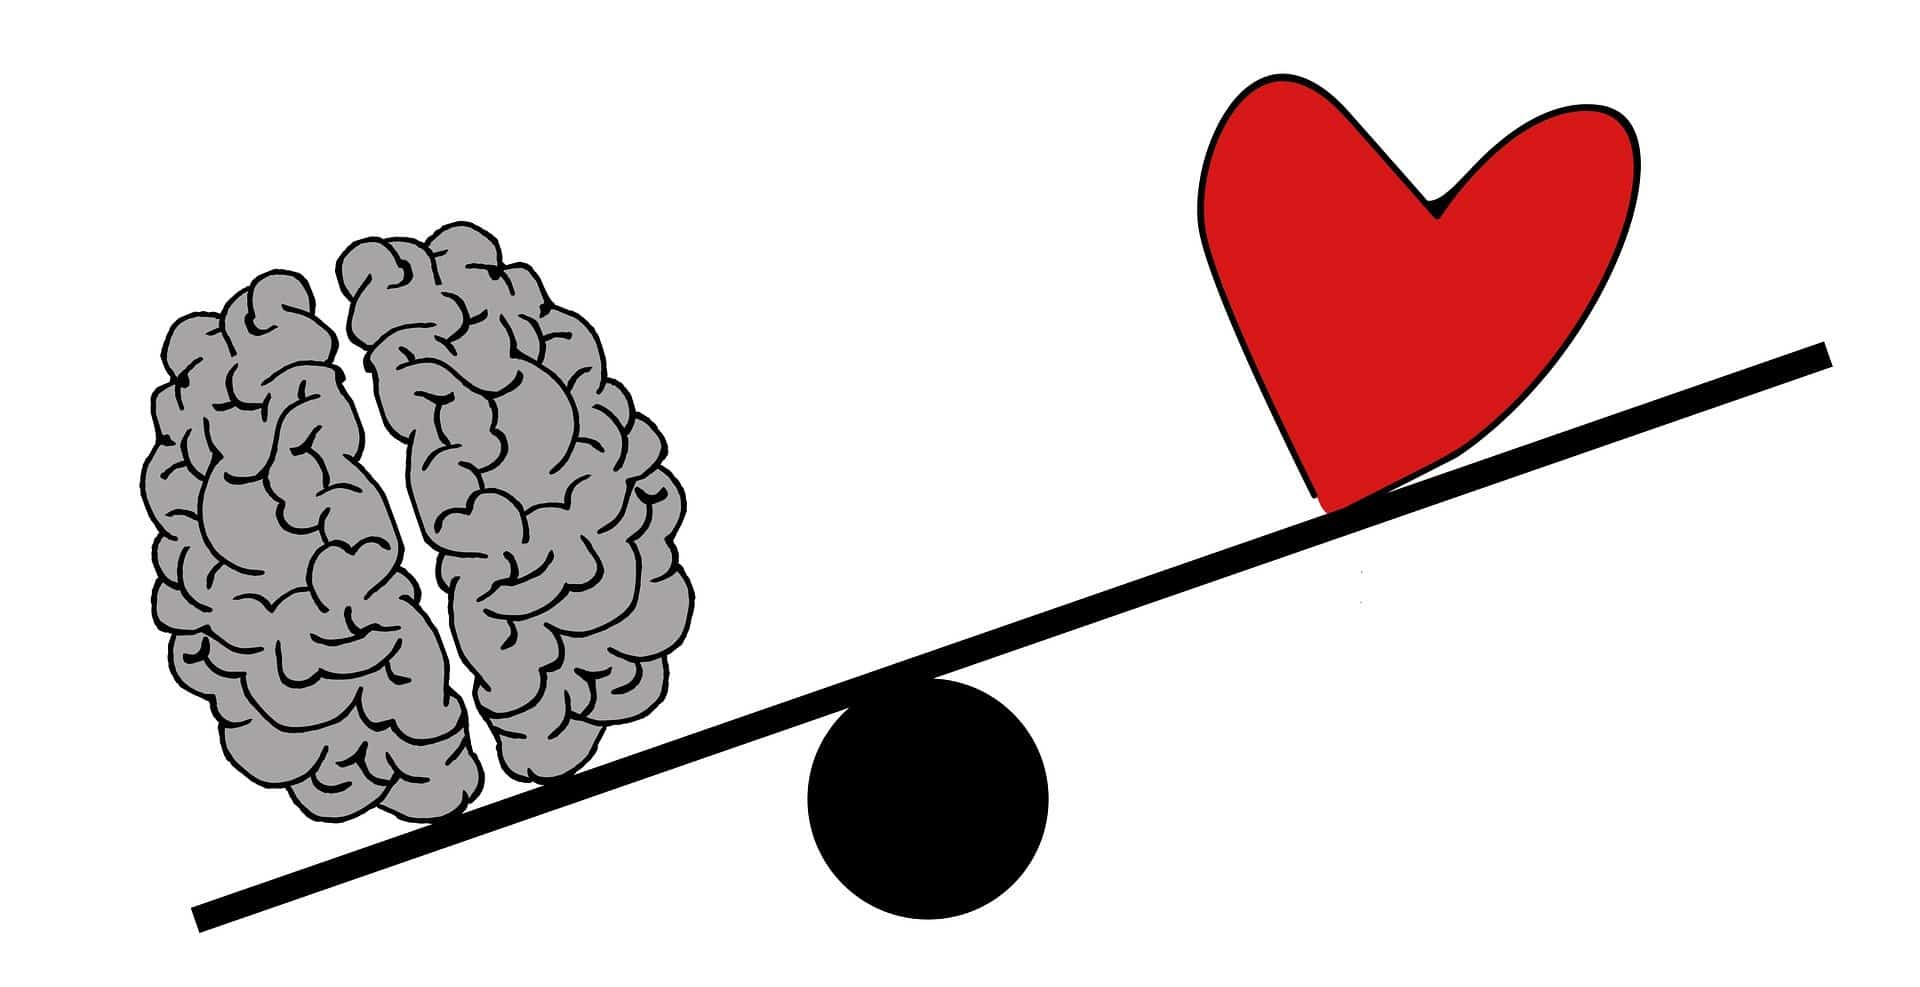 Table tennis brain and heart